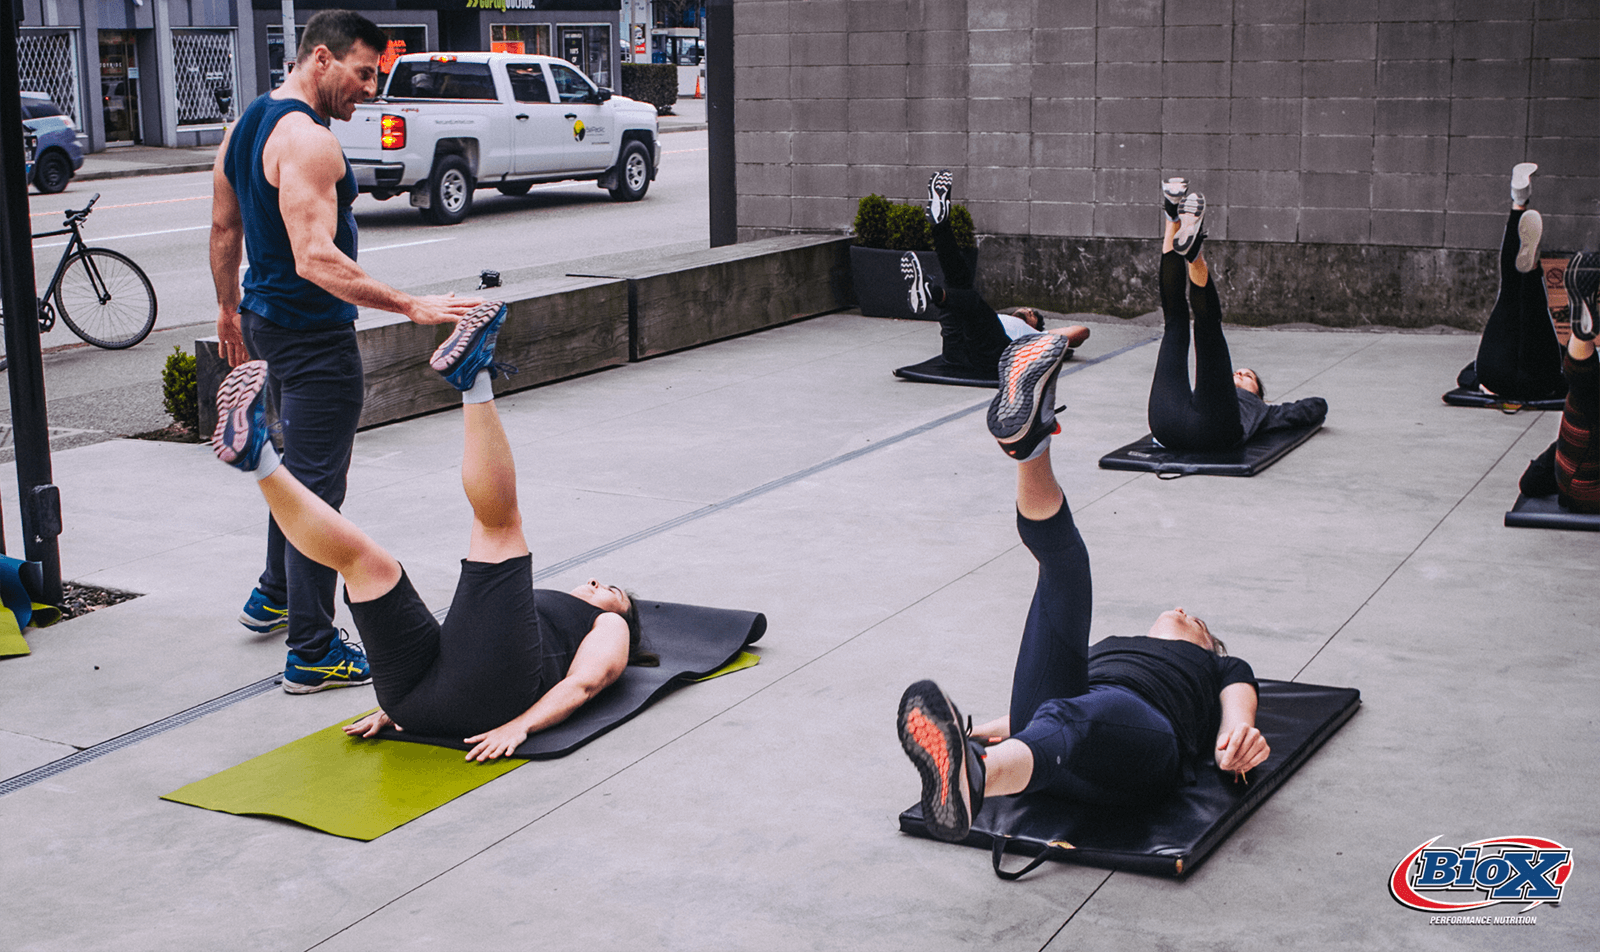 Highlights from the Full Body Bootcamp with Yvan